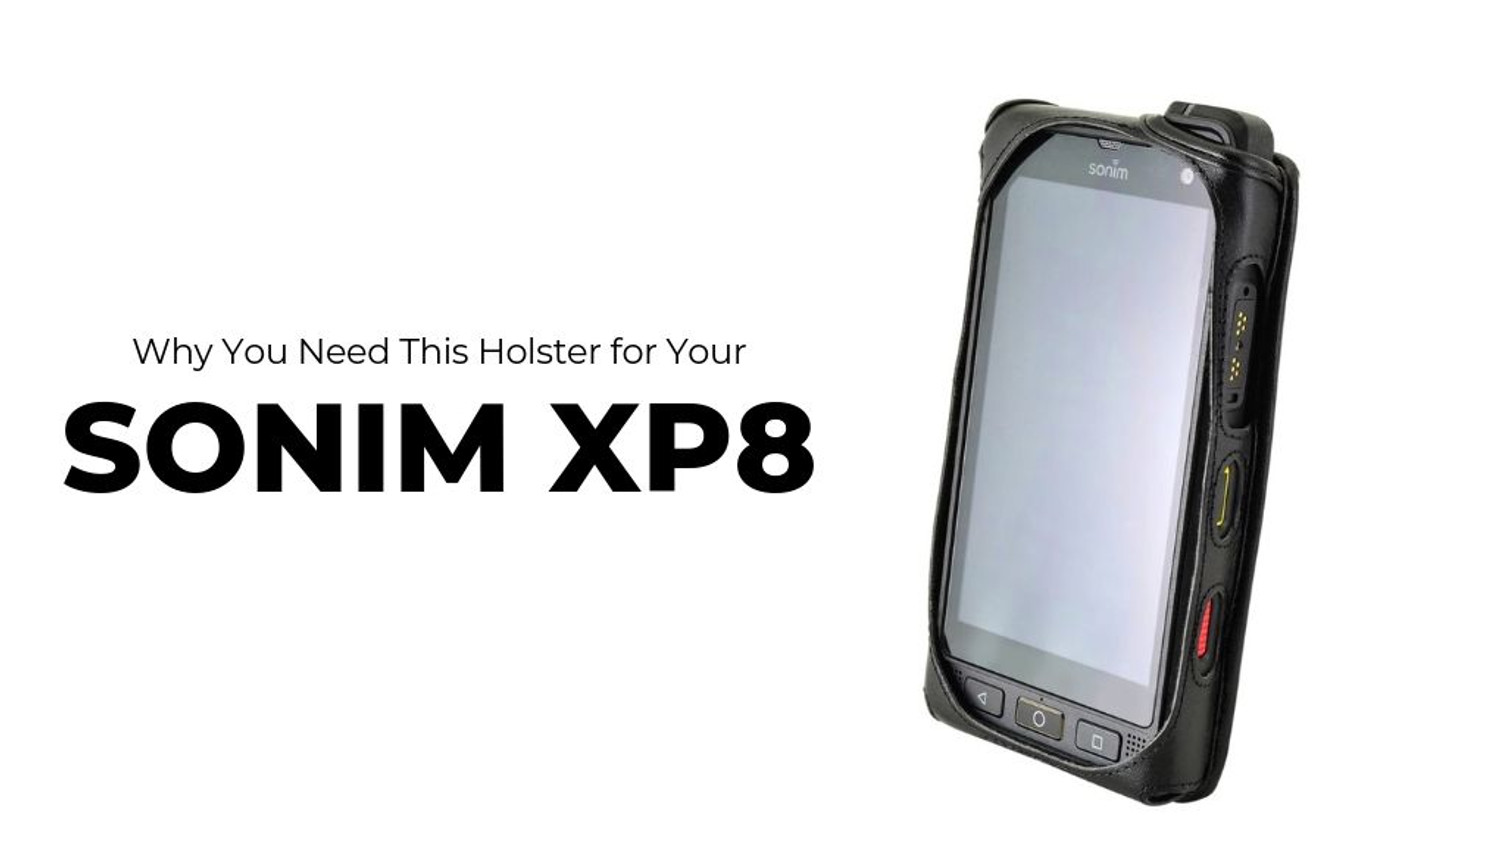 Why You Need This Holster for Your Sonim XP8